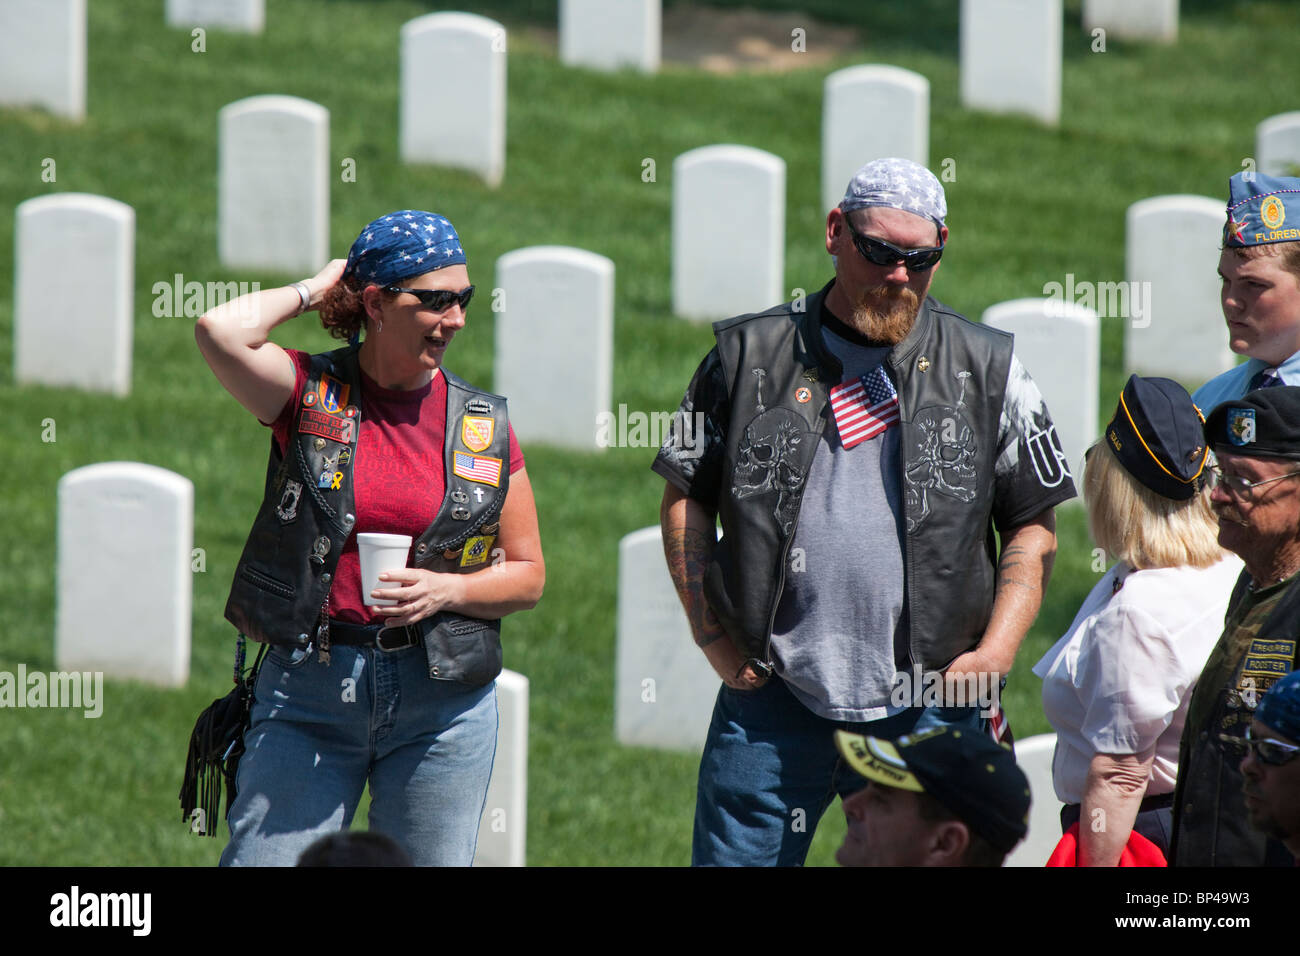 American veterans honor the fallen at the Arlington National Cemetery in Virginia on Memorial Day 2010. - Stock Image